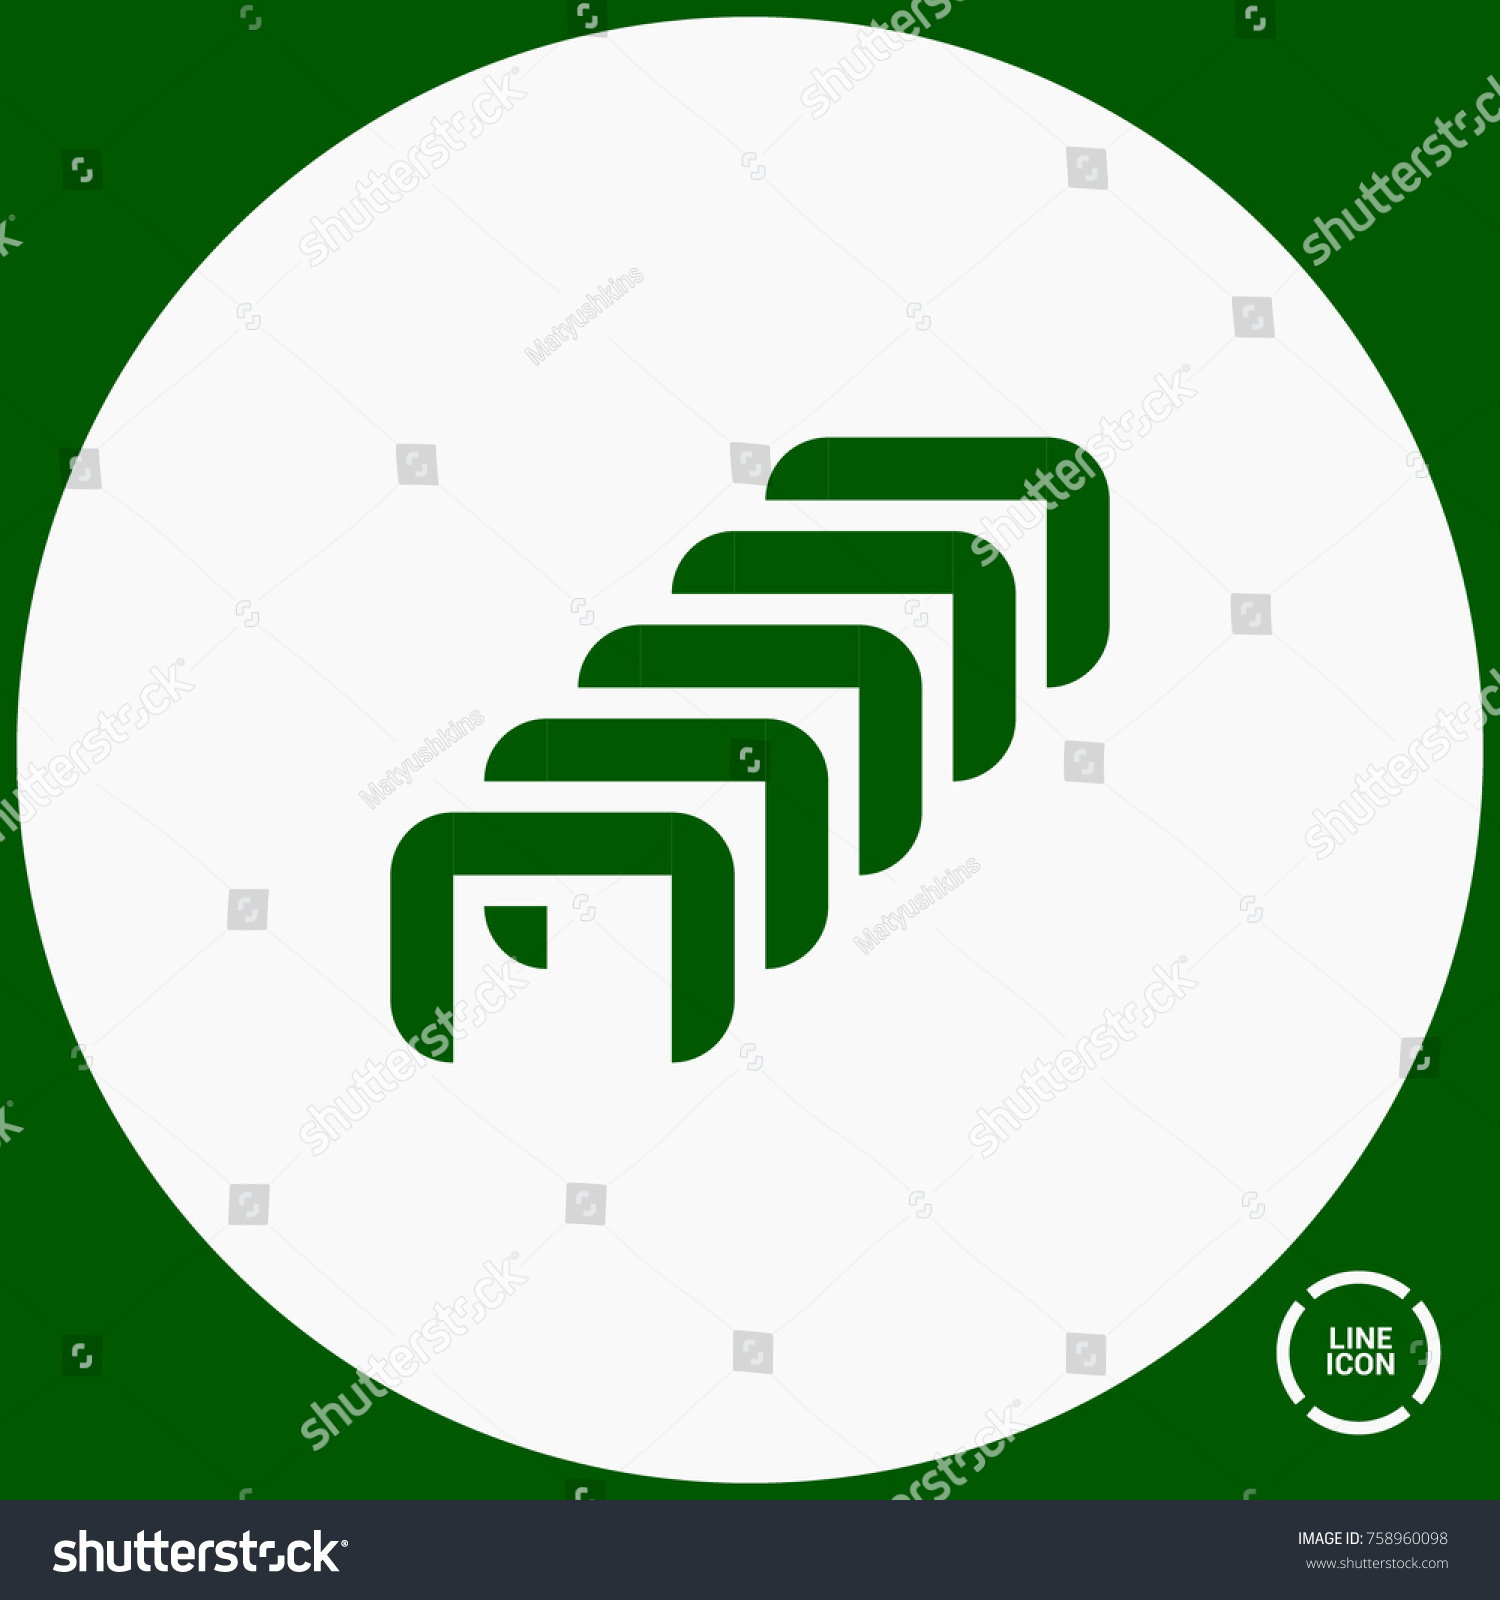 Stock symbol for staples choice image symbol and sign ideas staples minimal icon clamps line vector stock vector 758960098 staples minimal icon clamps line vector stock biocorpaavc